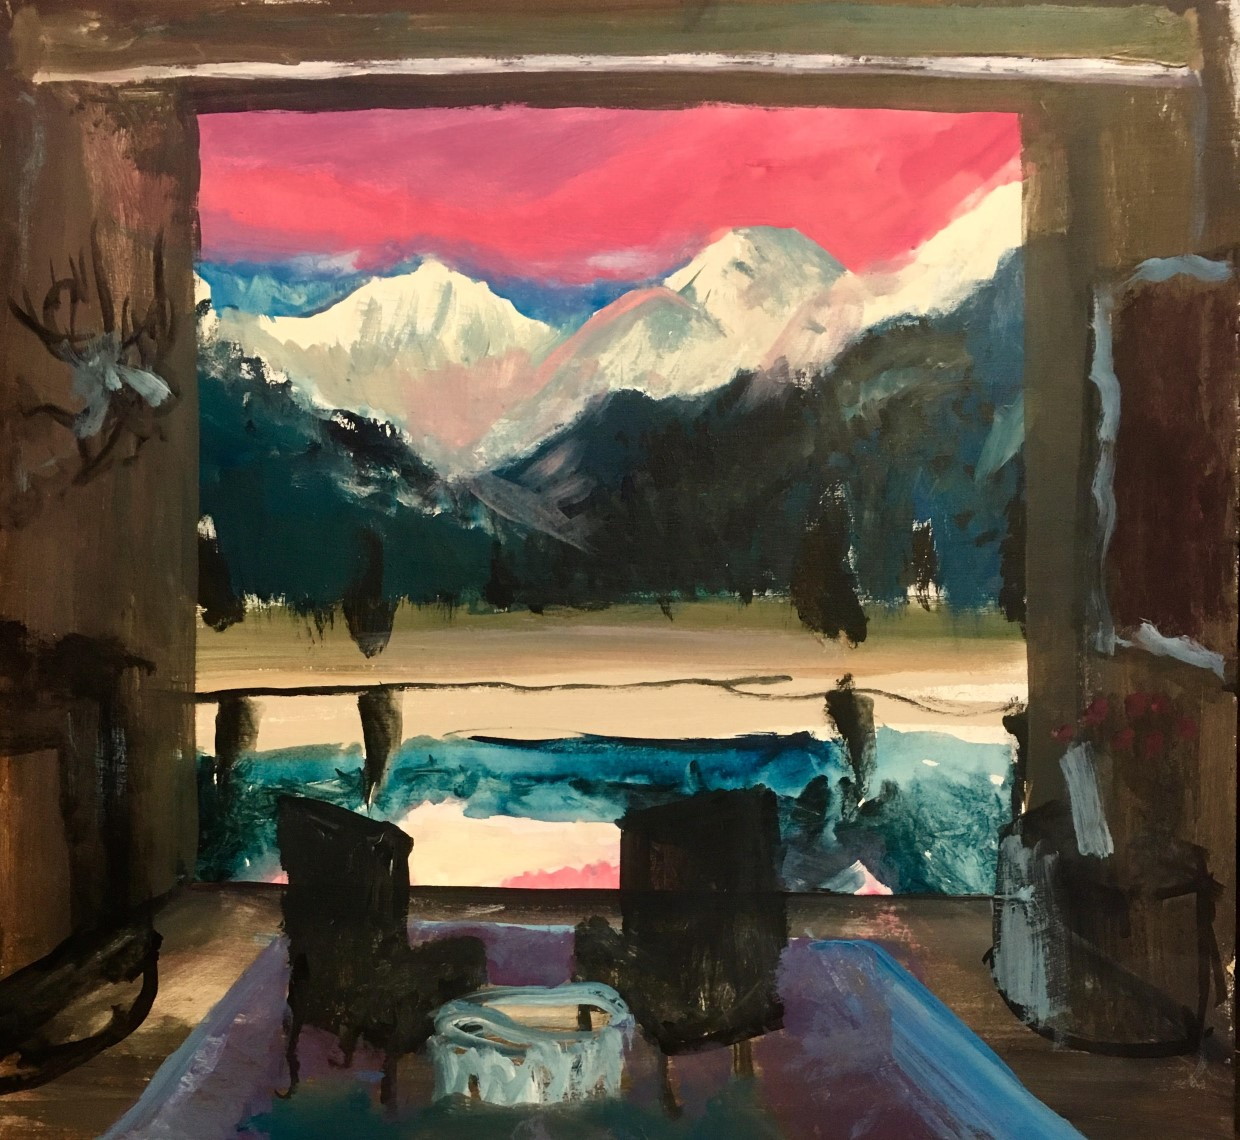 johnny defeo department of the interior painting rocky mountain national park rmnp cabin interior